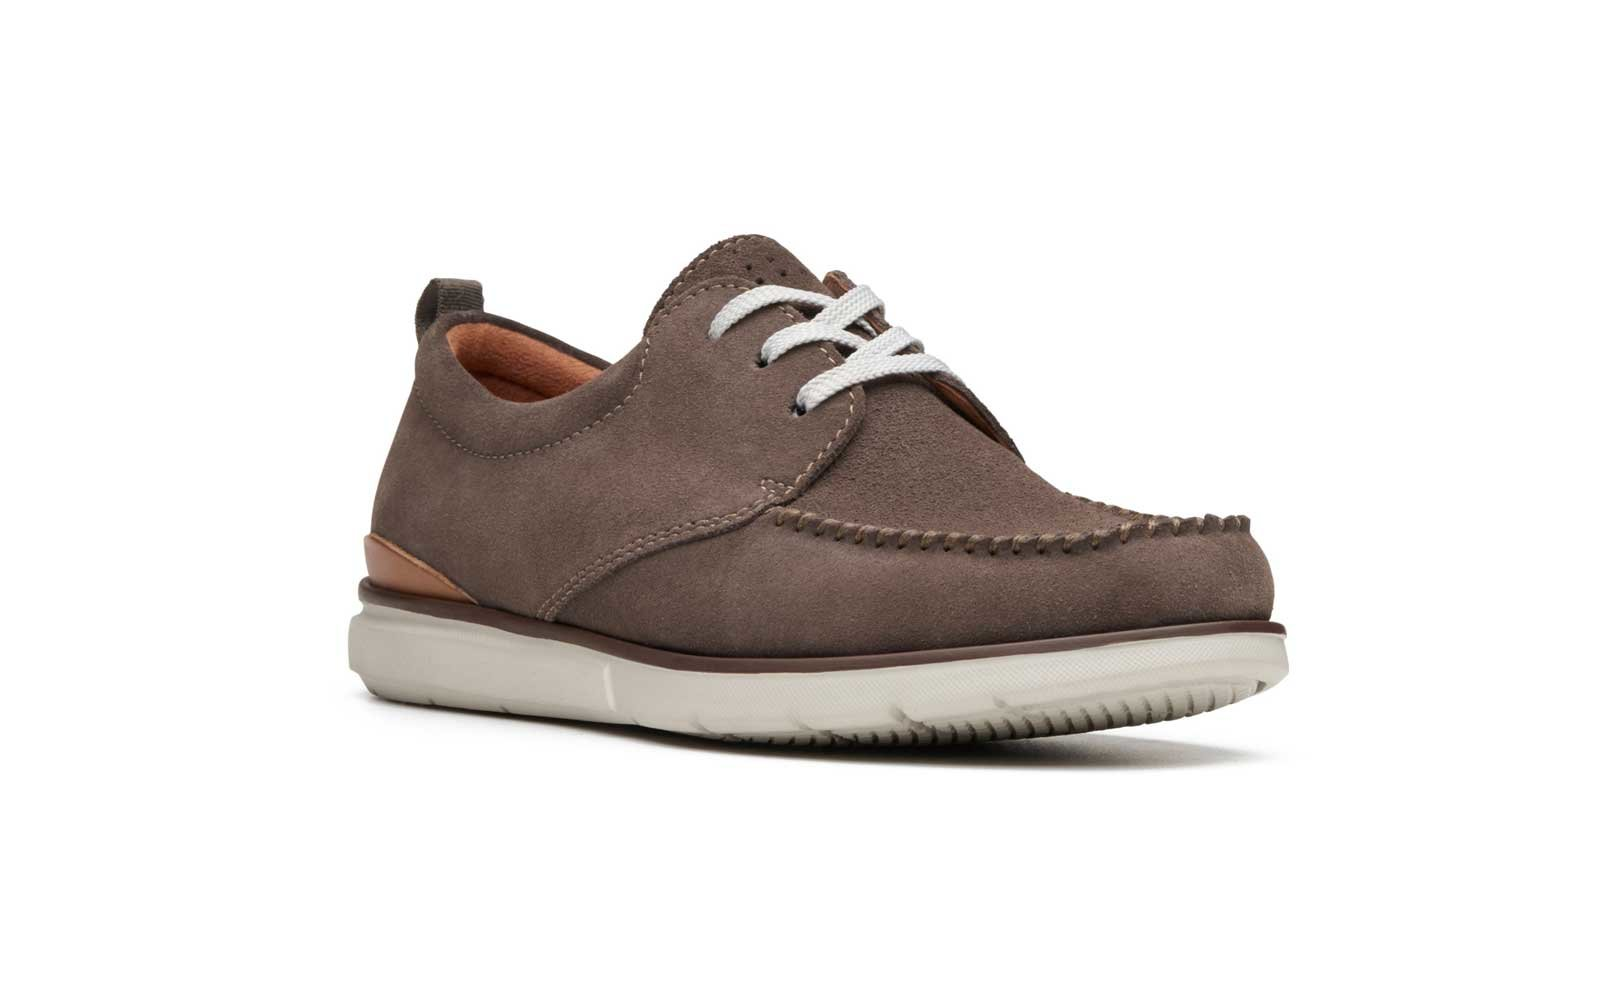 c5e63993e292 Clarks  Edgewood Mix  Suede Sneakers. clarks dress tennis shoes